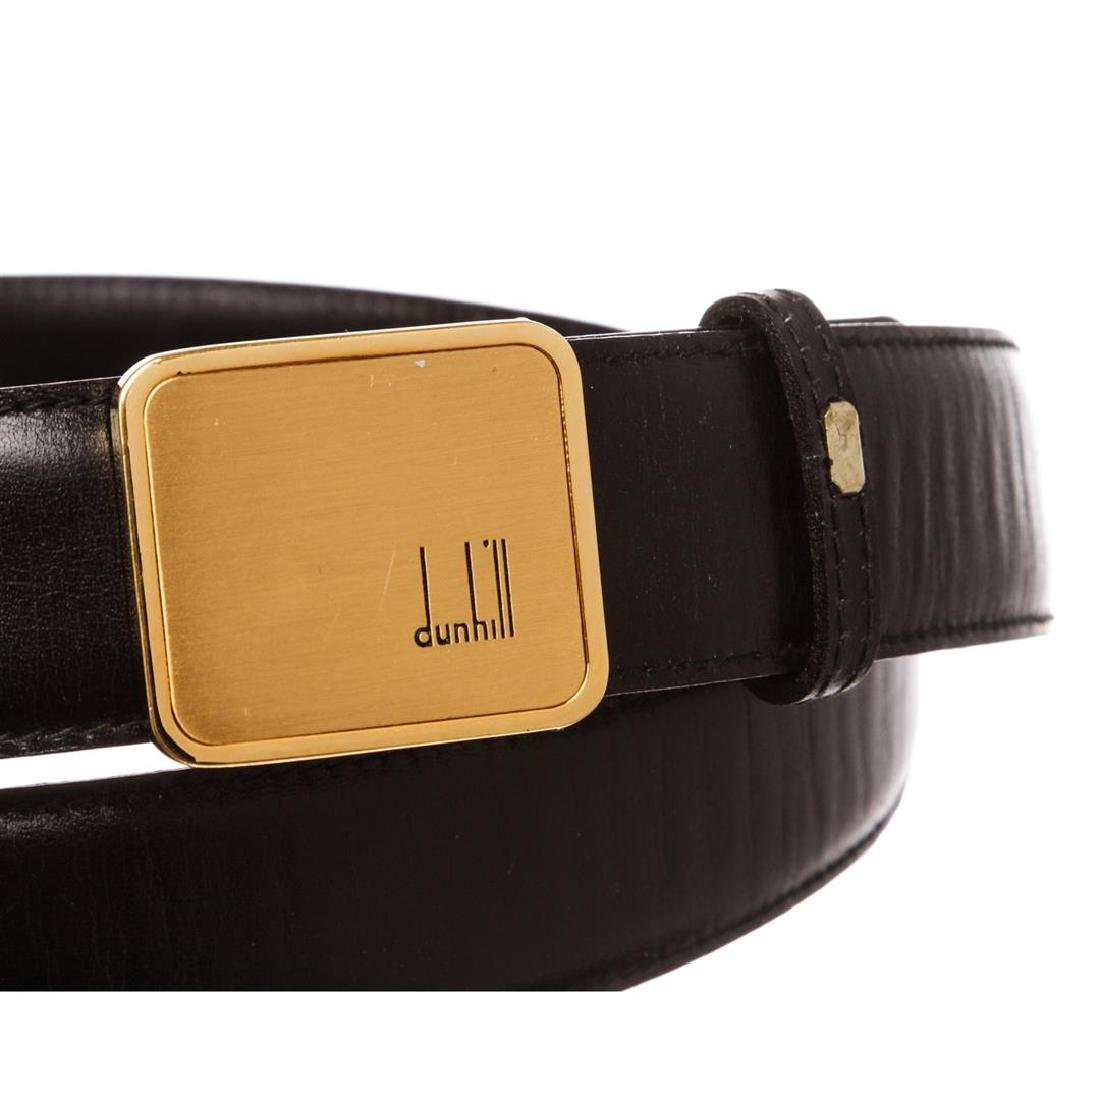 Dunhill Black Leather Gold Buckle Belt - 7